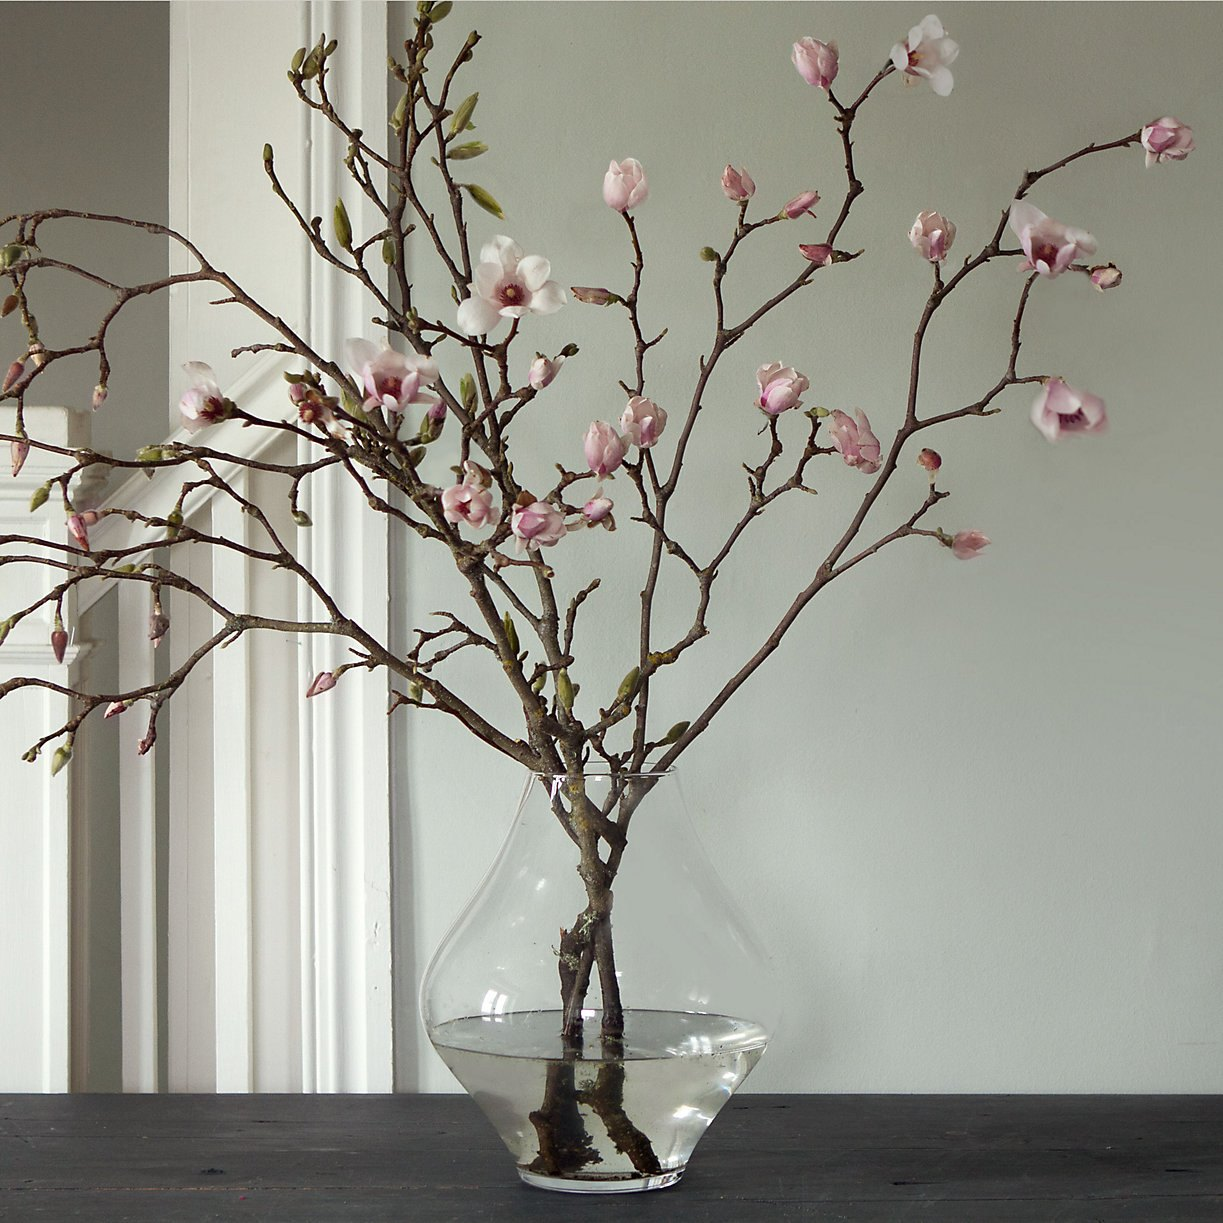 Flowering branches are festive and elegant